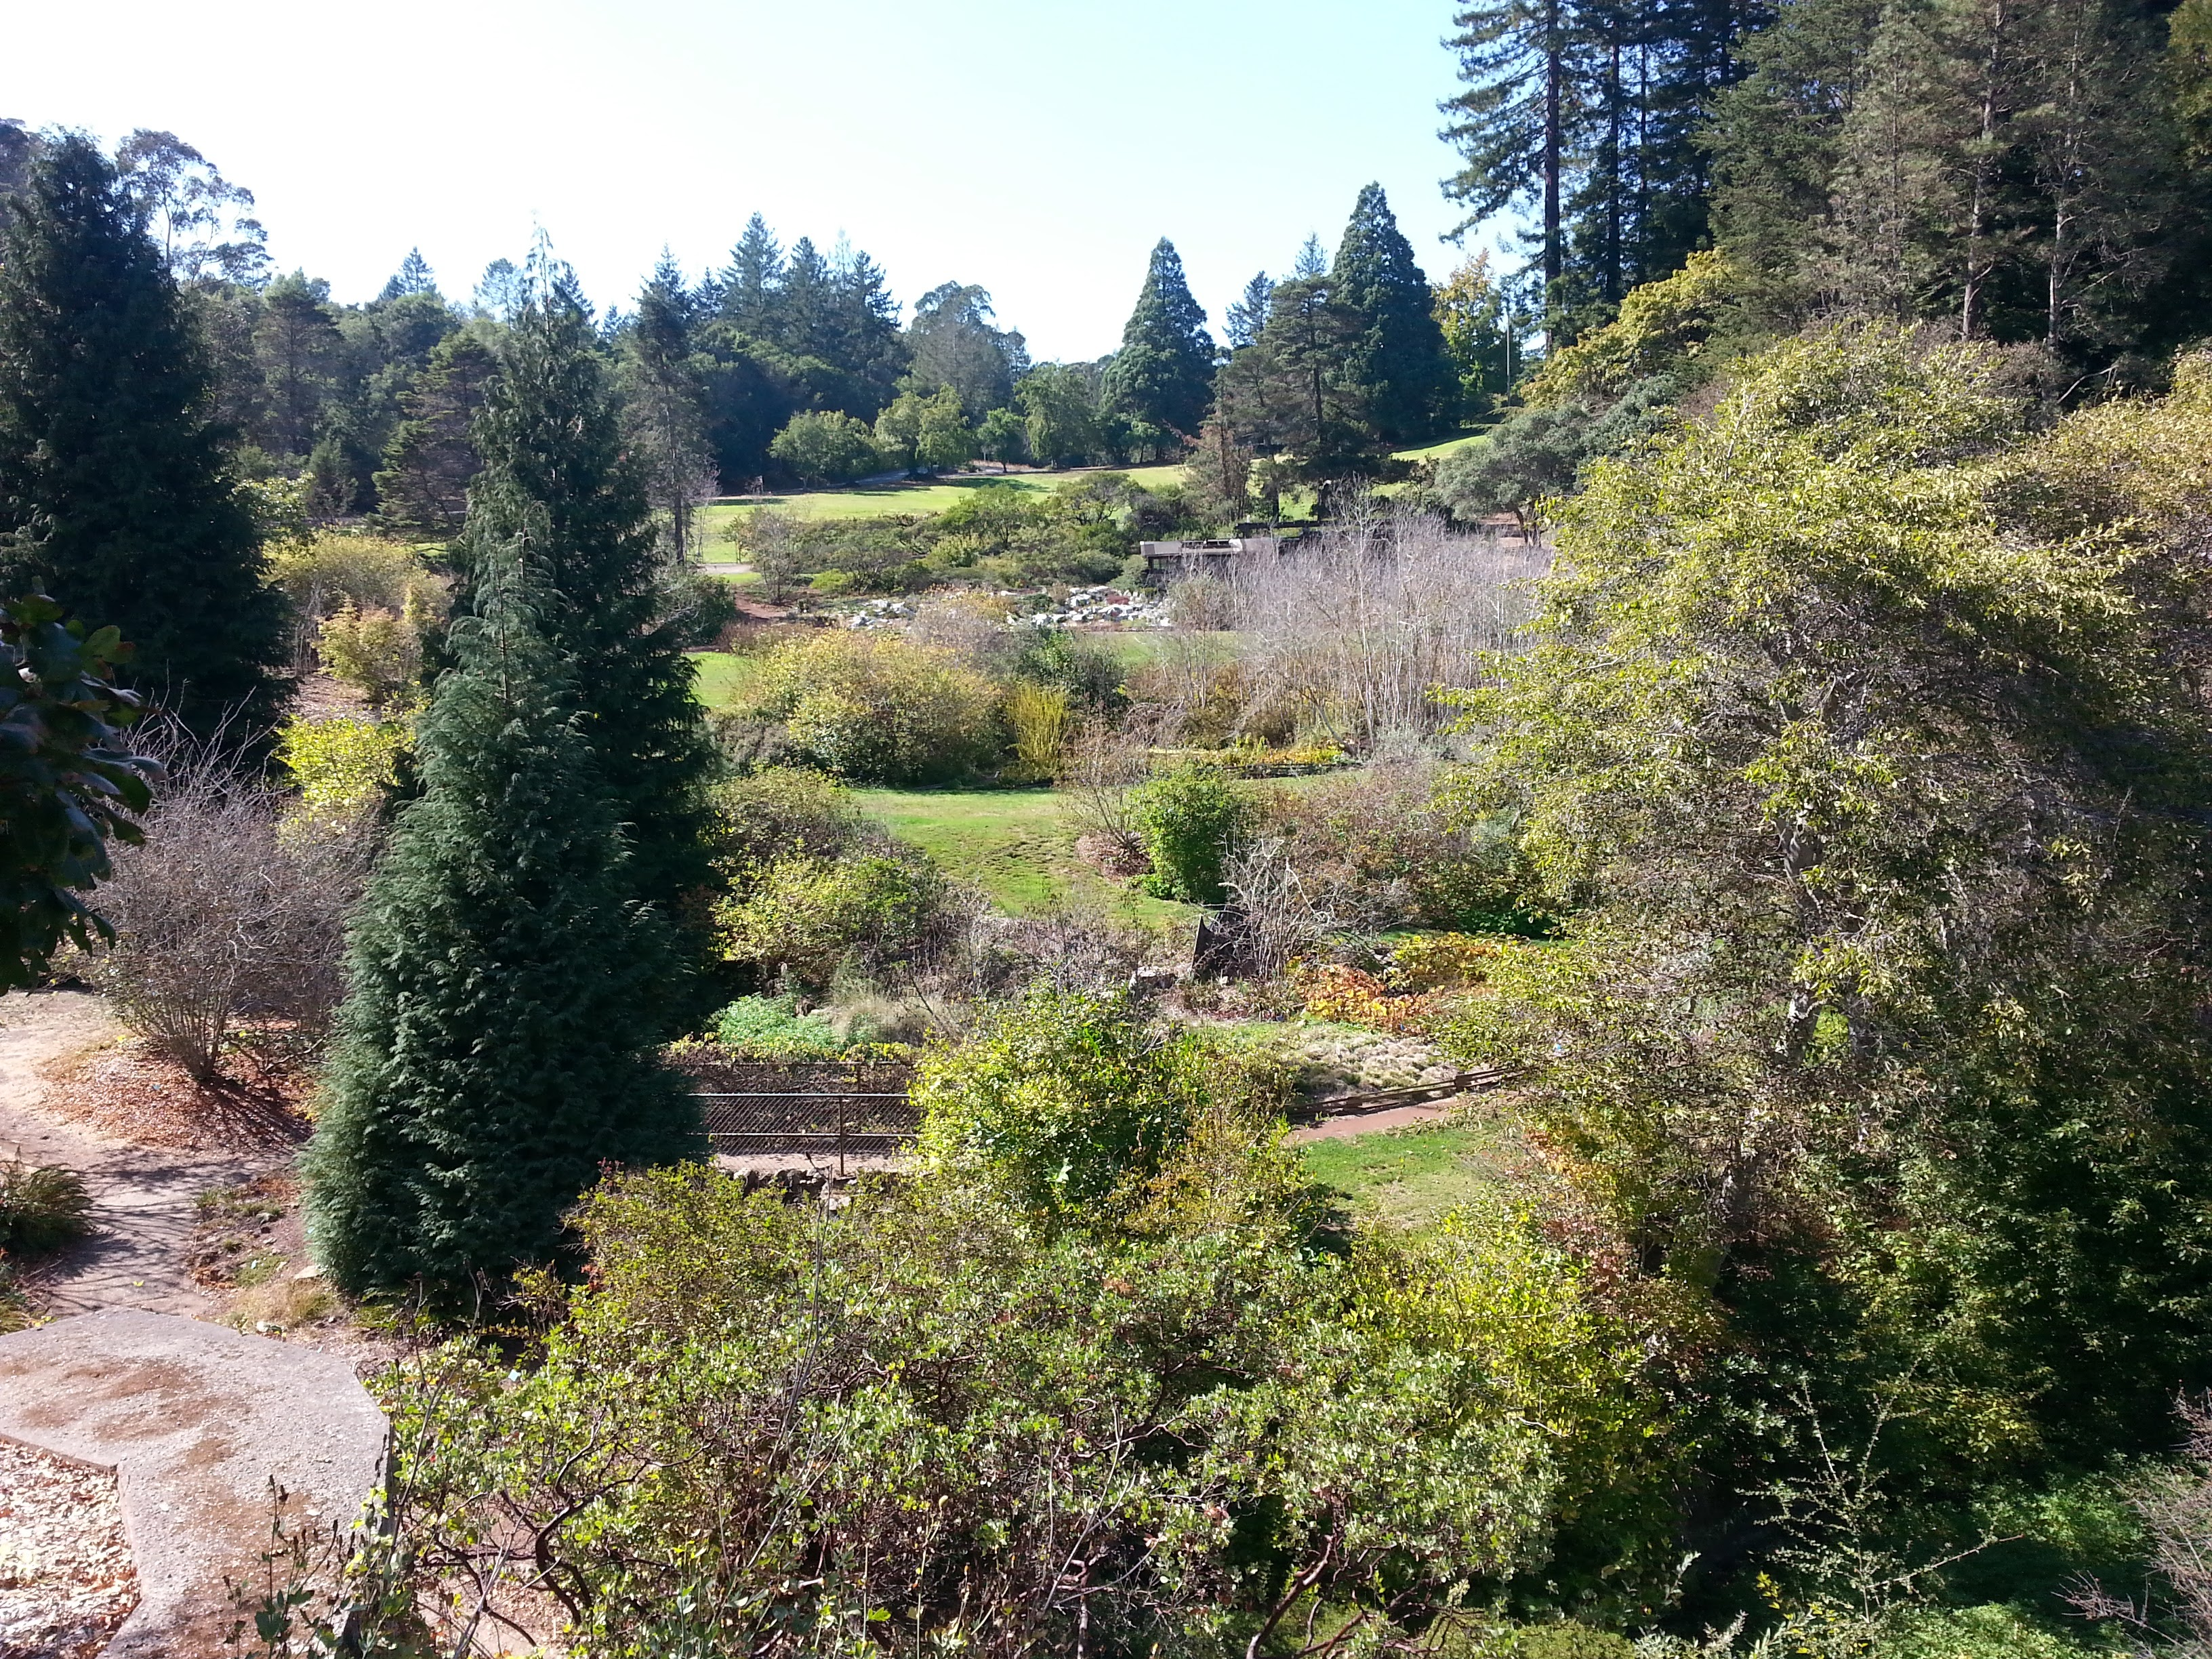 View across the garden from the visitor center